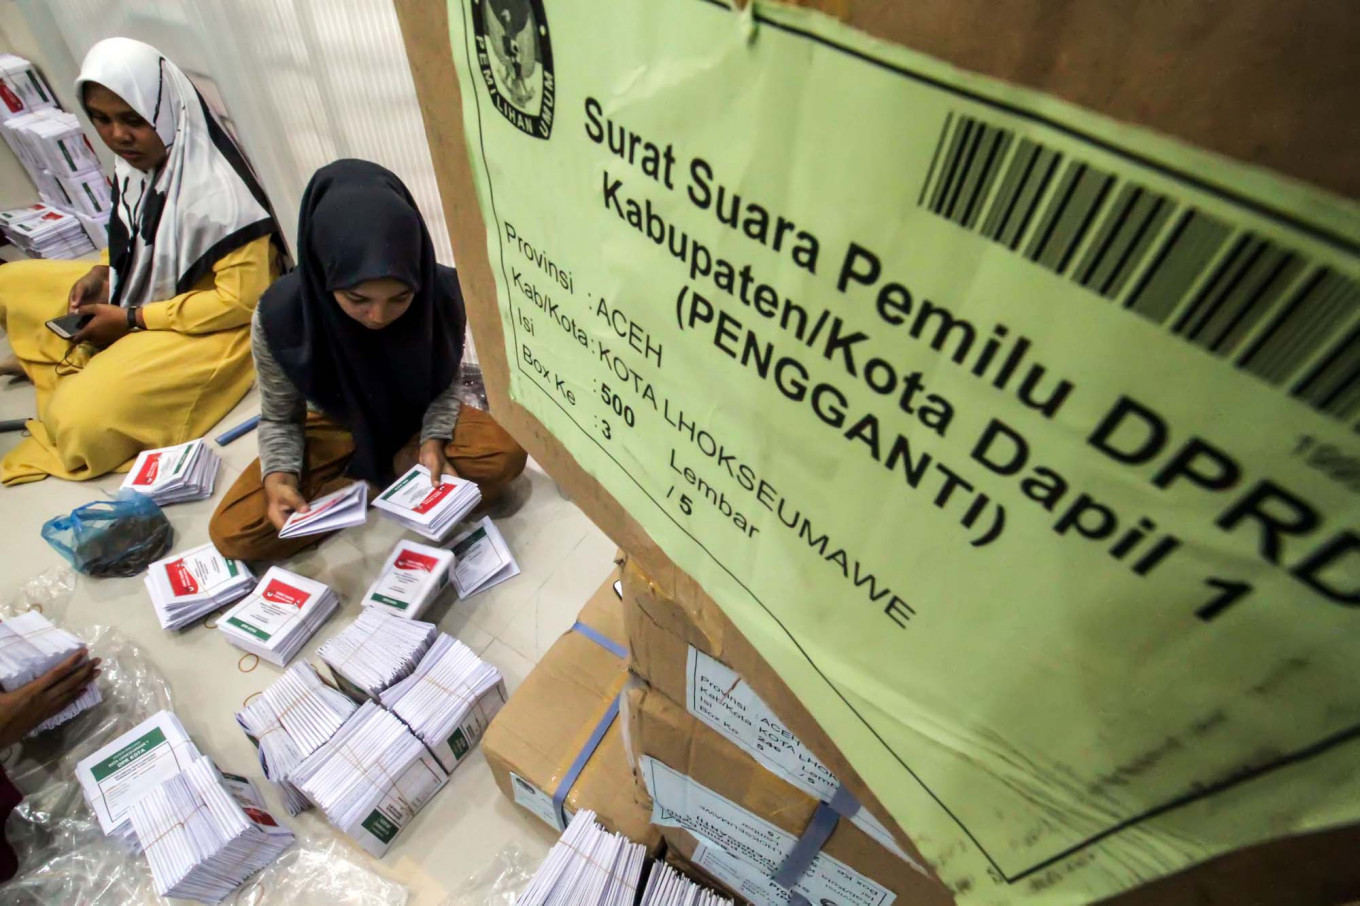 Freelance workers sort and fold substitute and additional ballots at the Lhokseumawe Independent Elections Commission (KIP) in Aceh on Friday. The local KIP received 5,912 substitute and additional ballots for the simultaneous elections. Antara/Rahmad